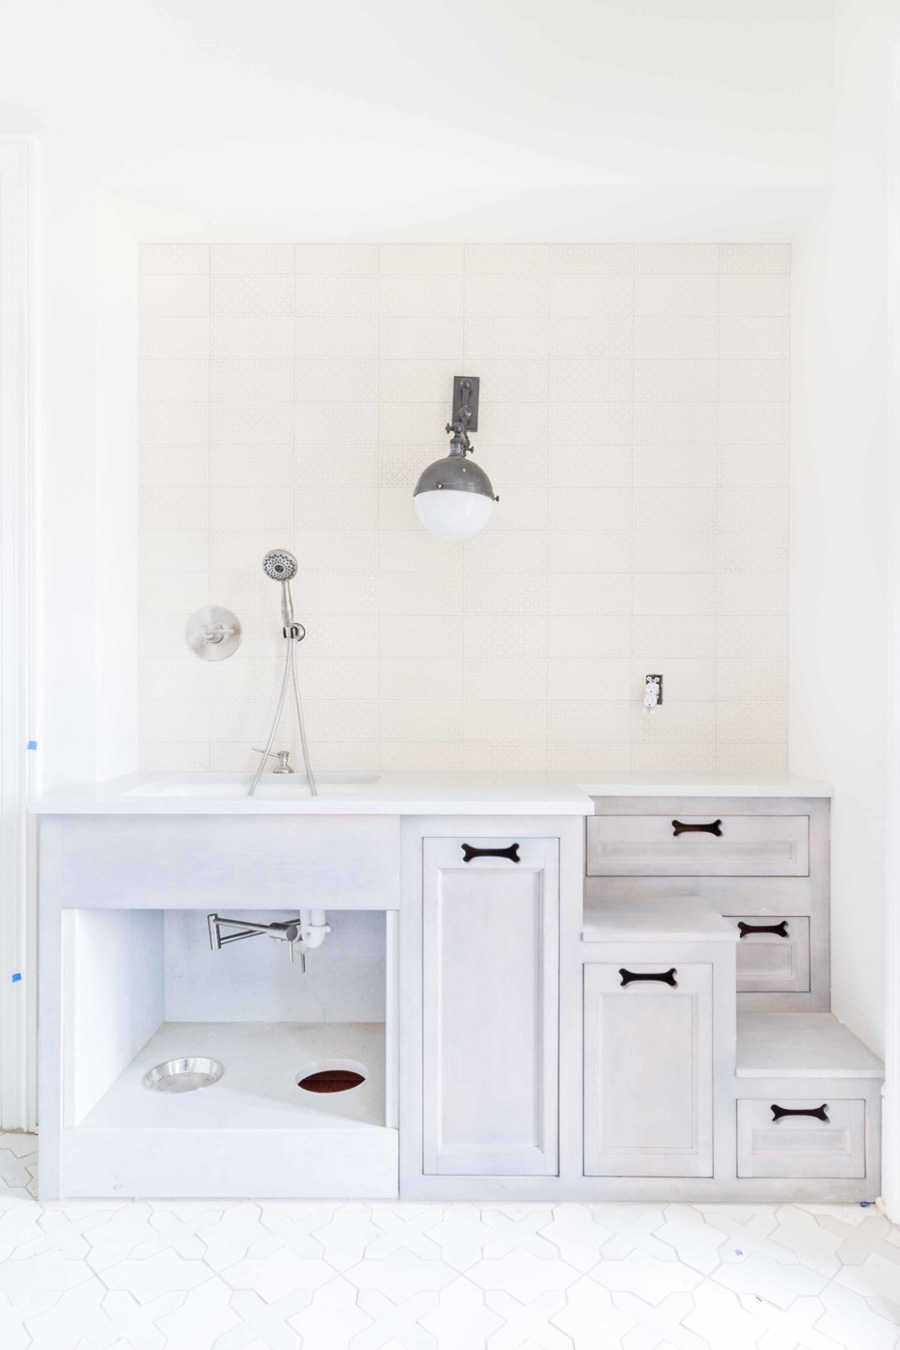 Amazing! Love this built-in dog wash sink and food bowls - design by Lori Paranjape